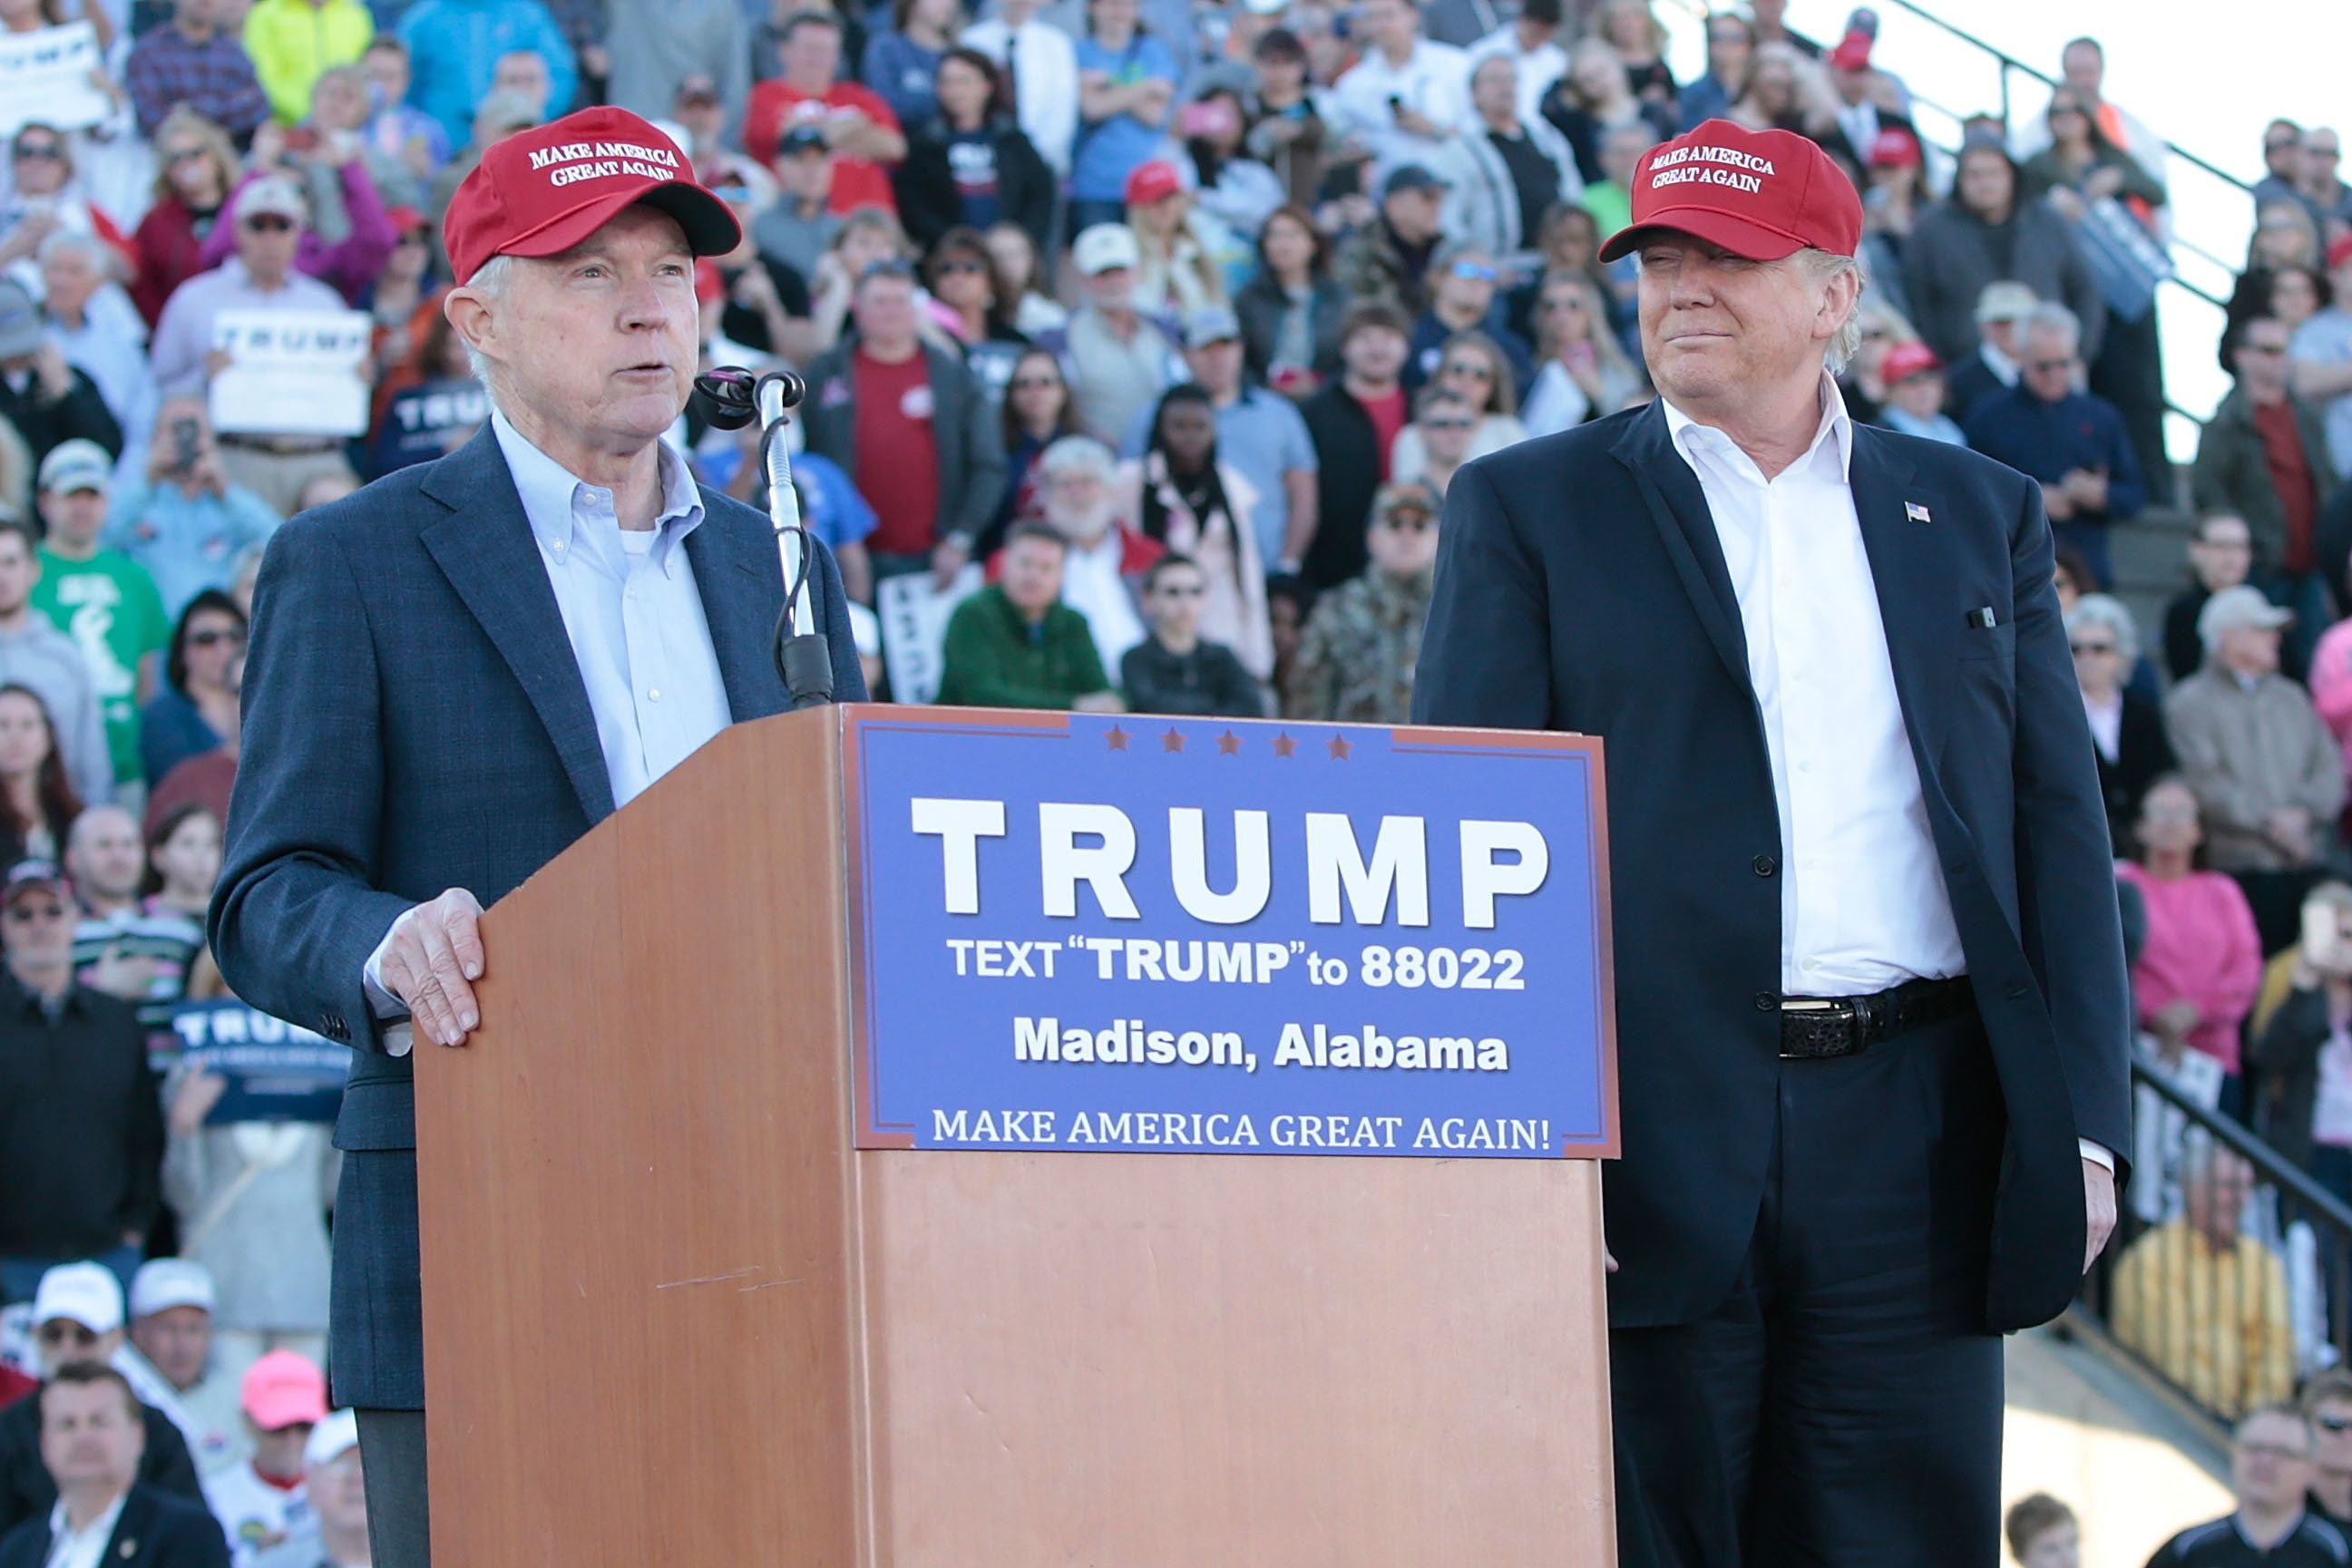 """Breitbart described Jeff Sessions' endorsement of Trump in early 2016 as uniting the """"populist, nationalist movement."""""""